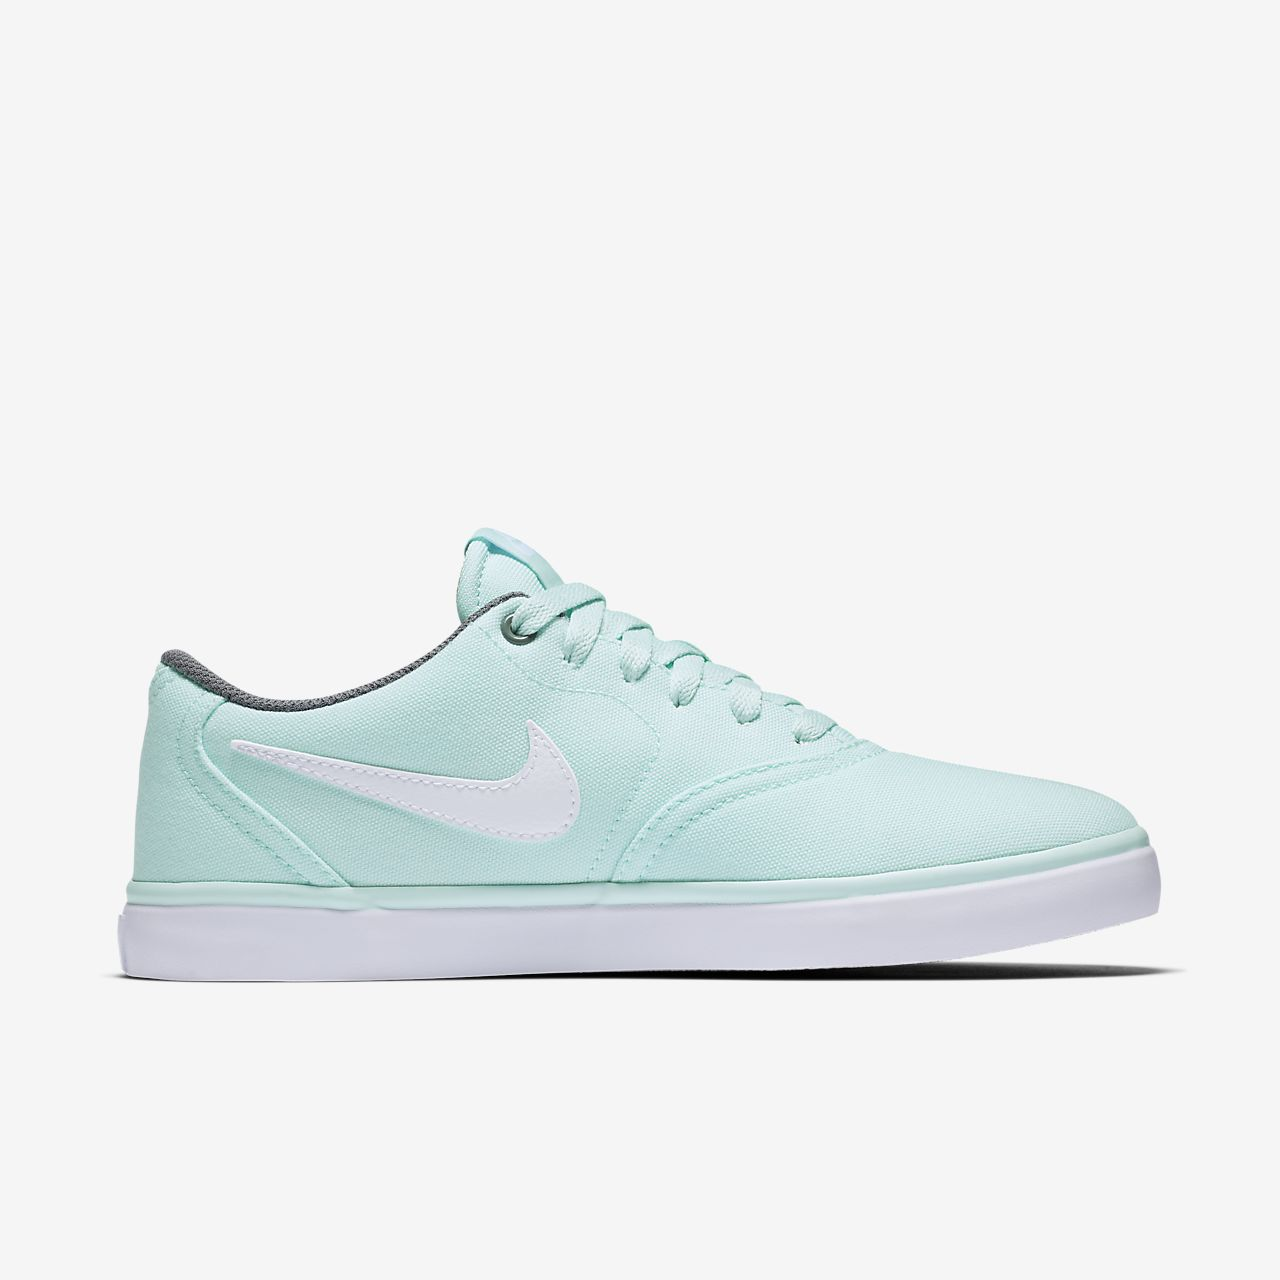 a706f7e122 Nike SB Check Solarsoft Canvas Women's Skateboarding Shoe